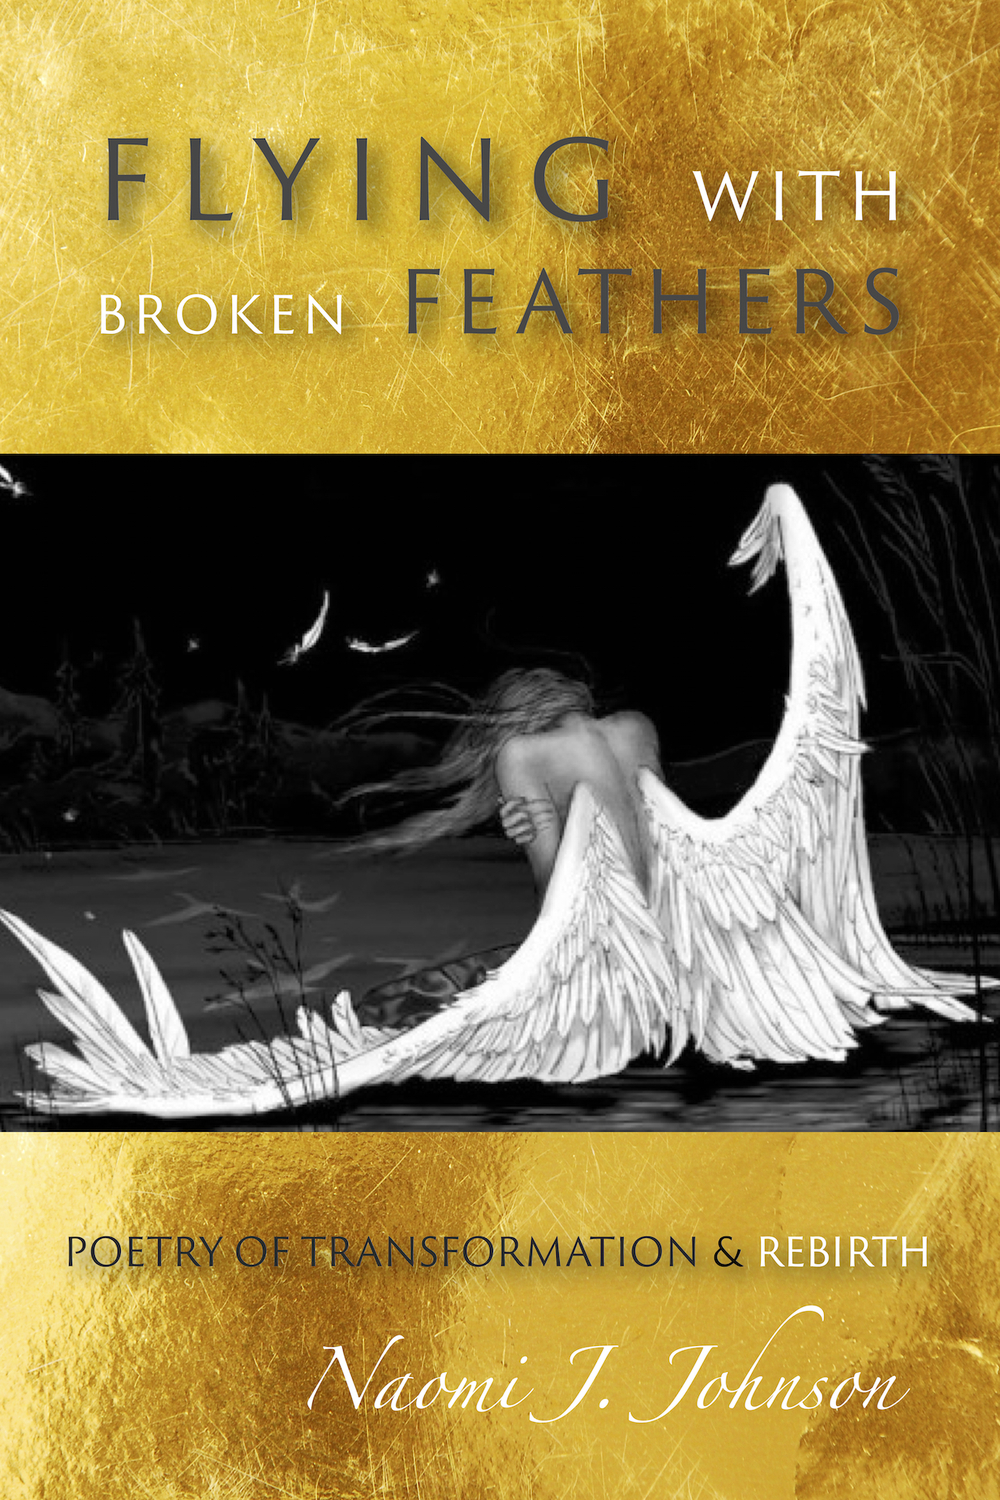 Flying with Broken Feathers - Book Cover - Front.jpg